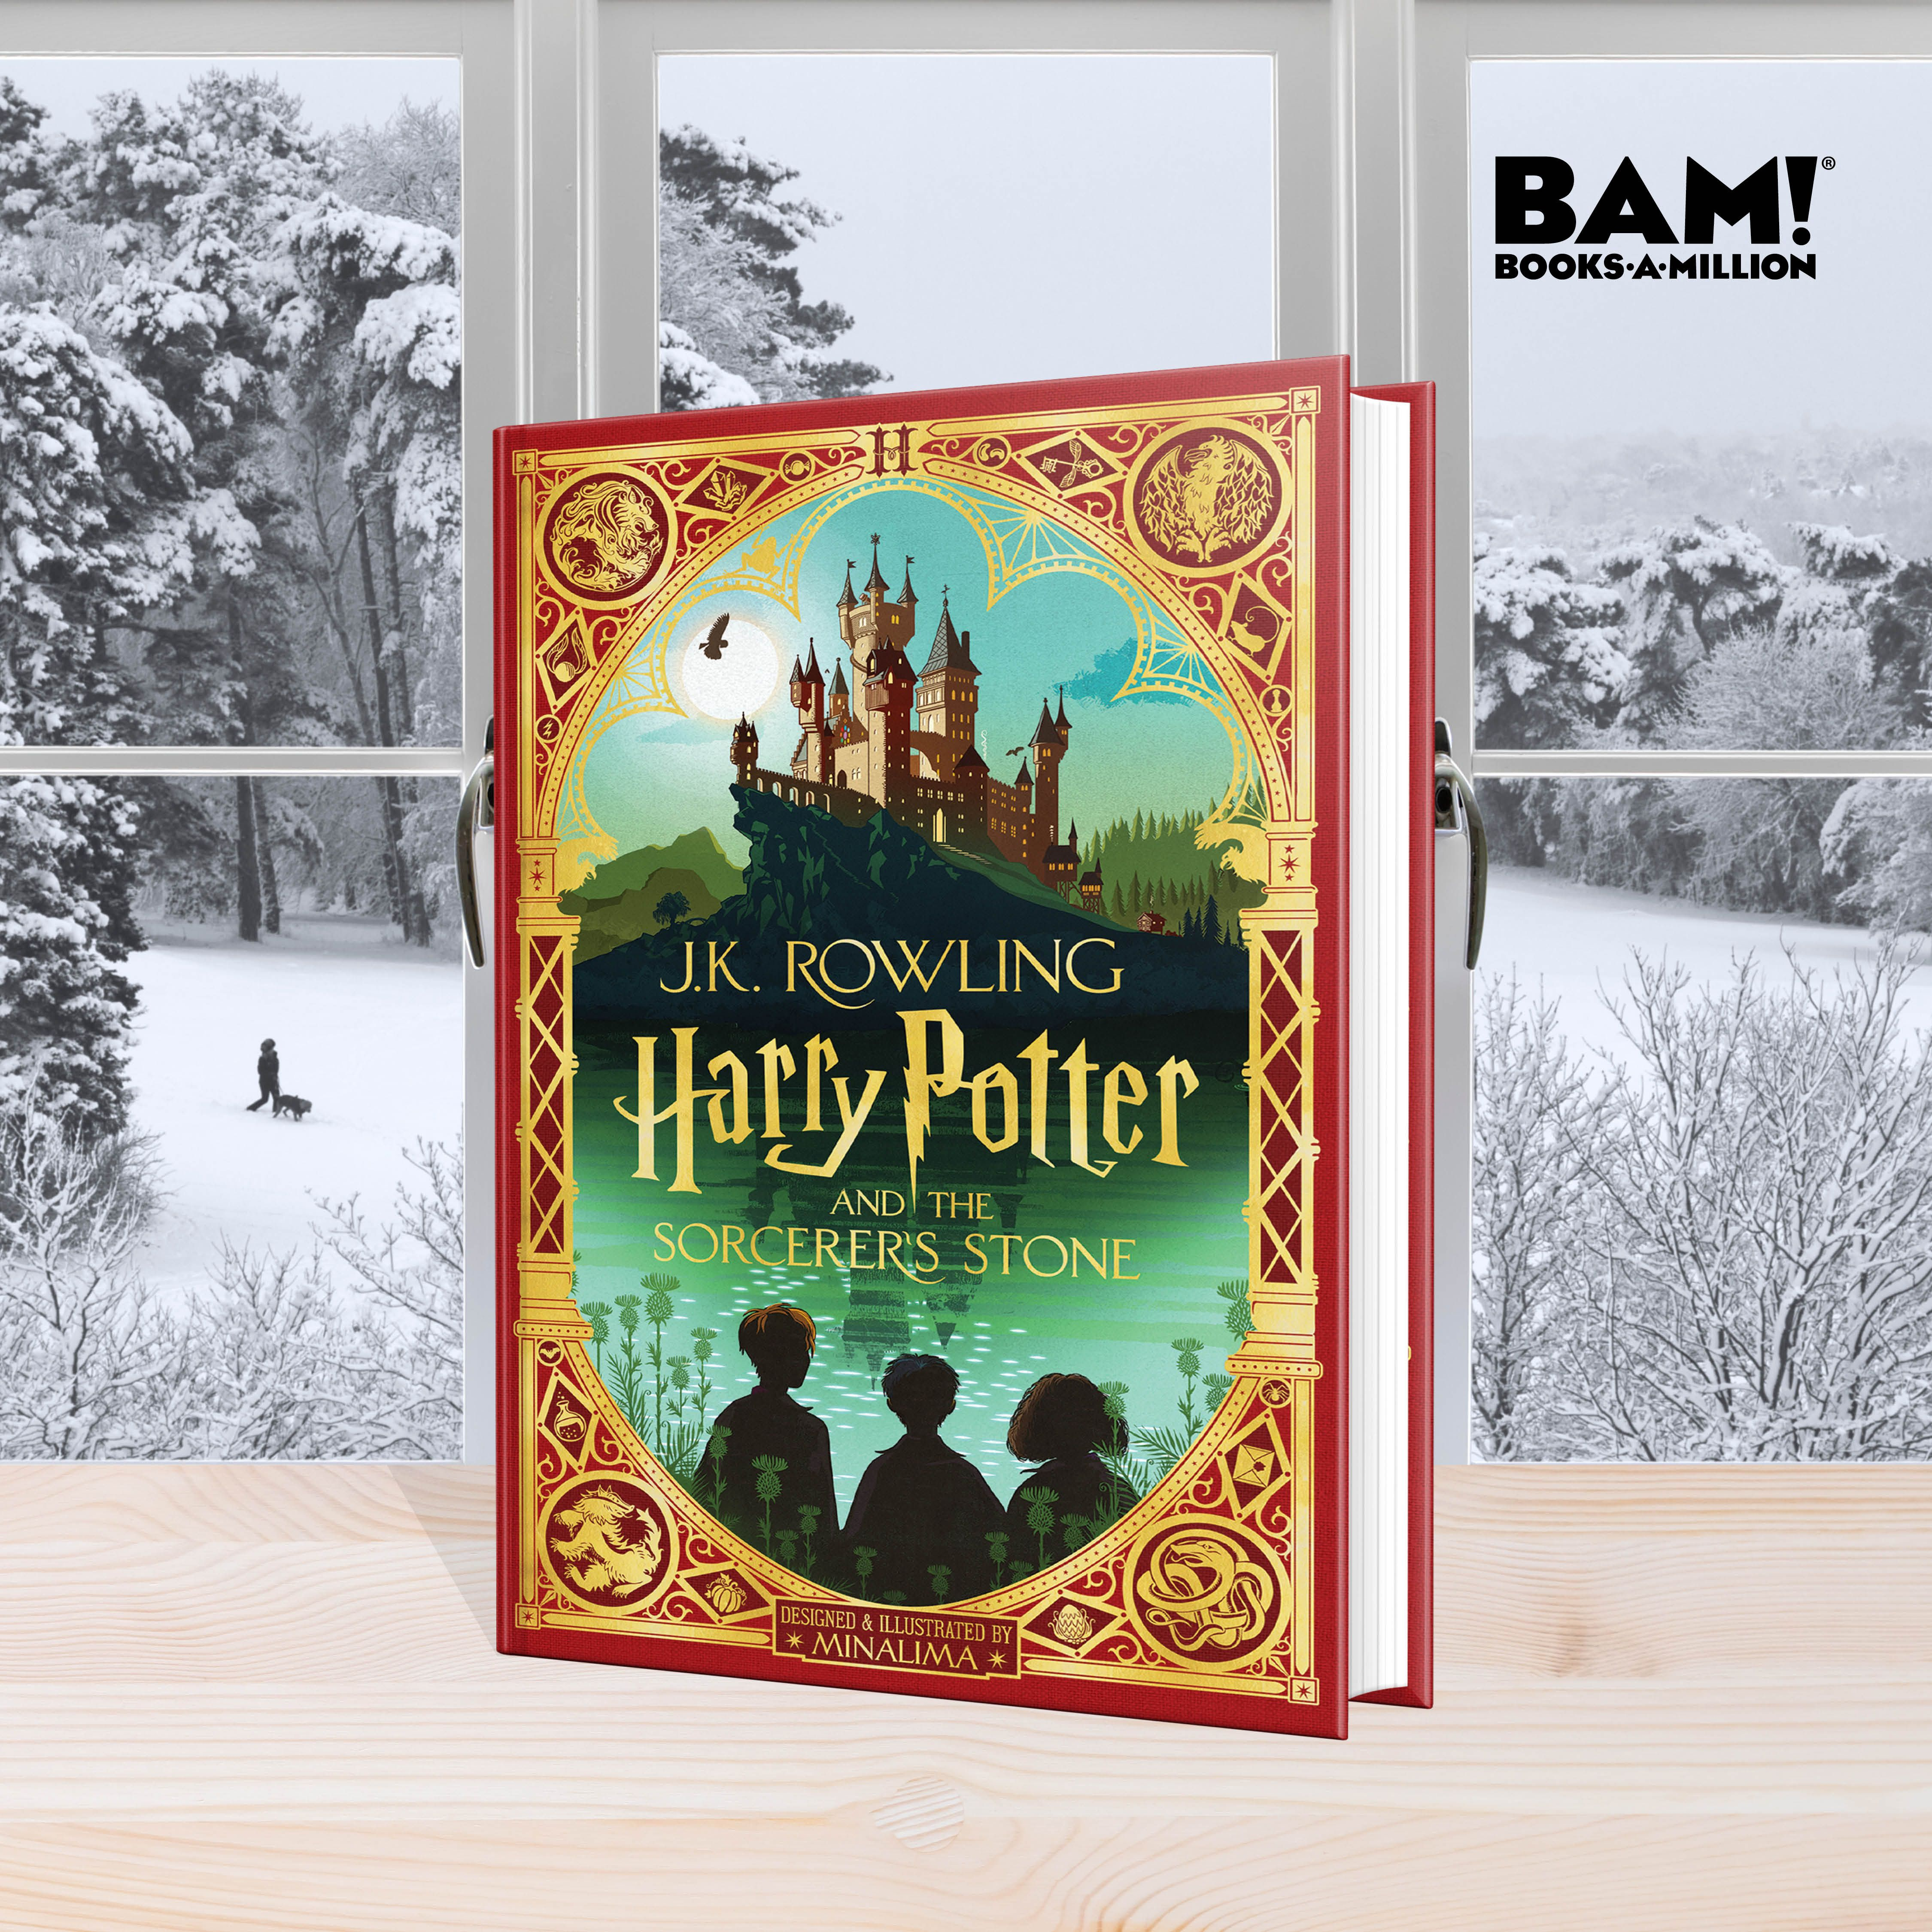 Just Announced This Dazzling New Edition Of Harrypotter And The Sorcerer S Stone Has Been Fully Illustrated In The Sorcerer S Stone Hogwarts Letter Sorcerer